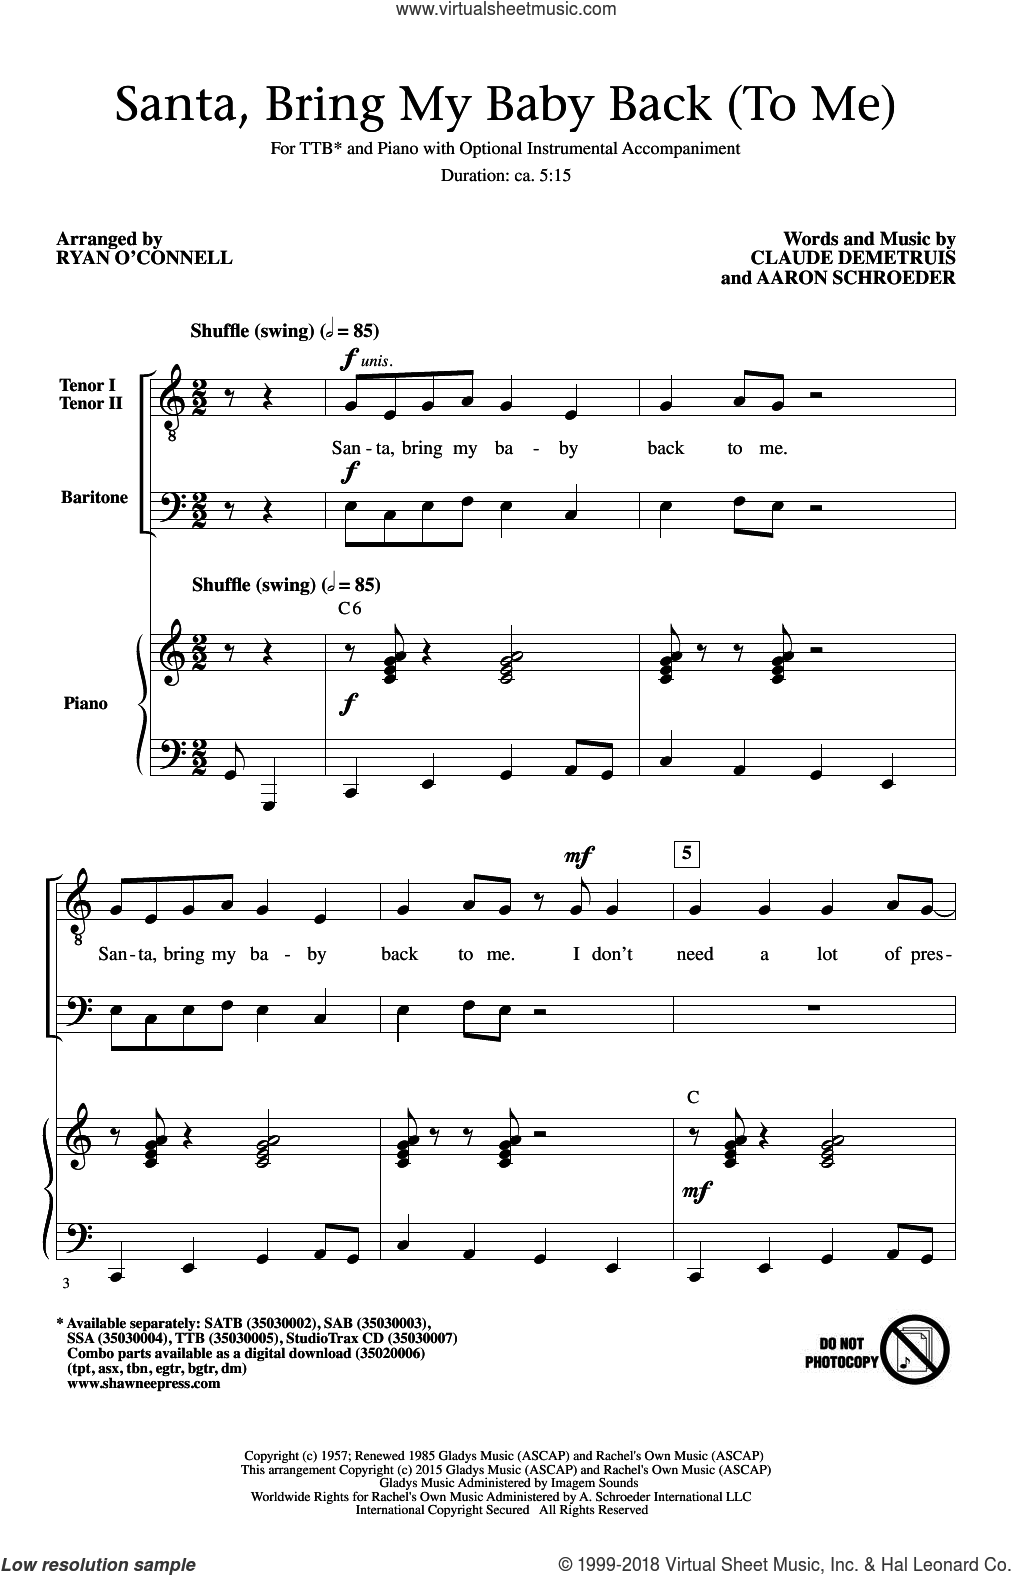 Santa, Bring My Baby Back (To Me) sheet music for choir and piano (TTBB) by Ryan O'Connell